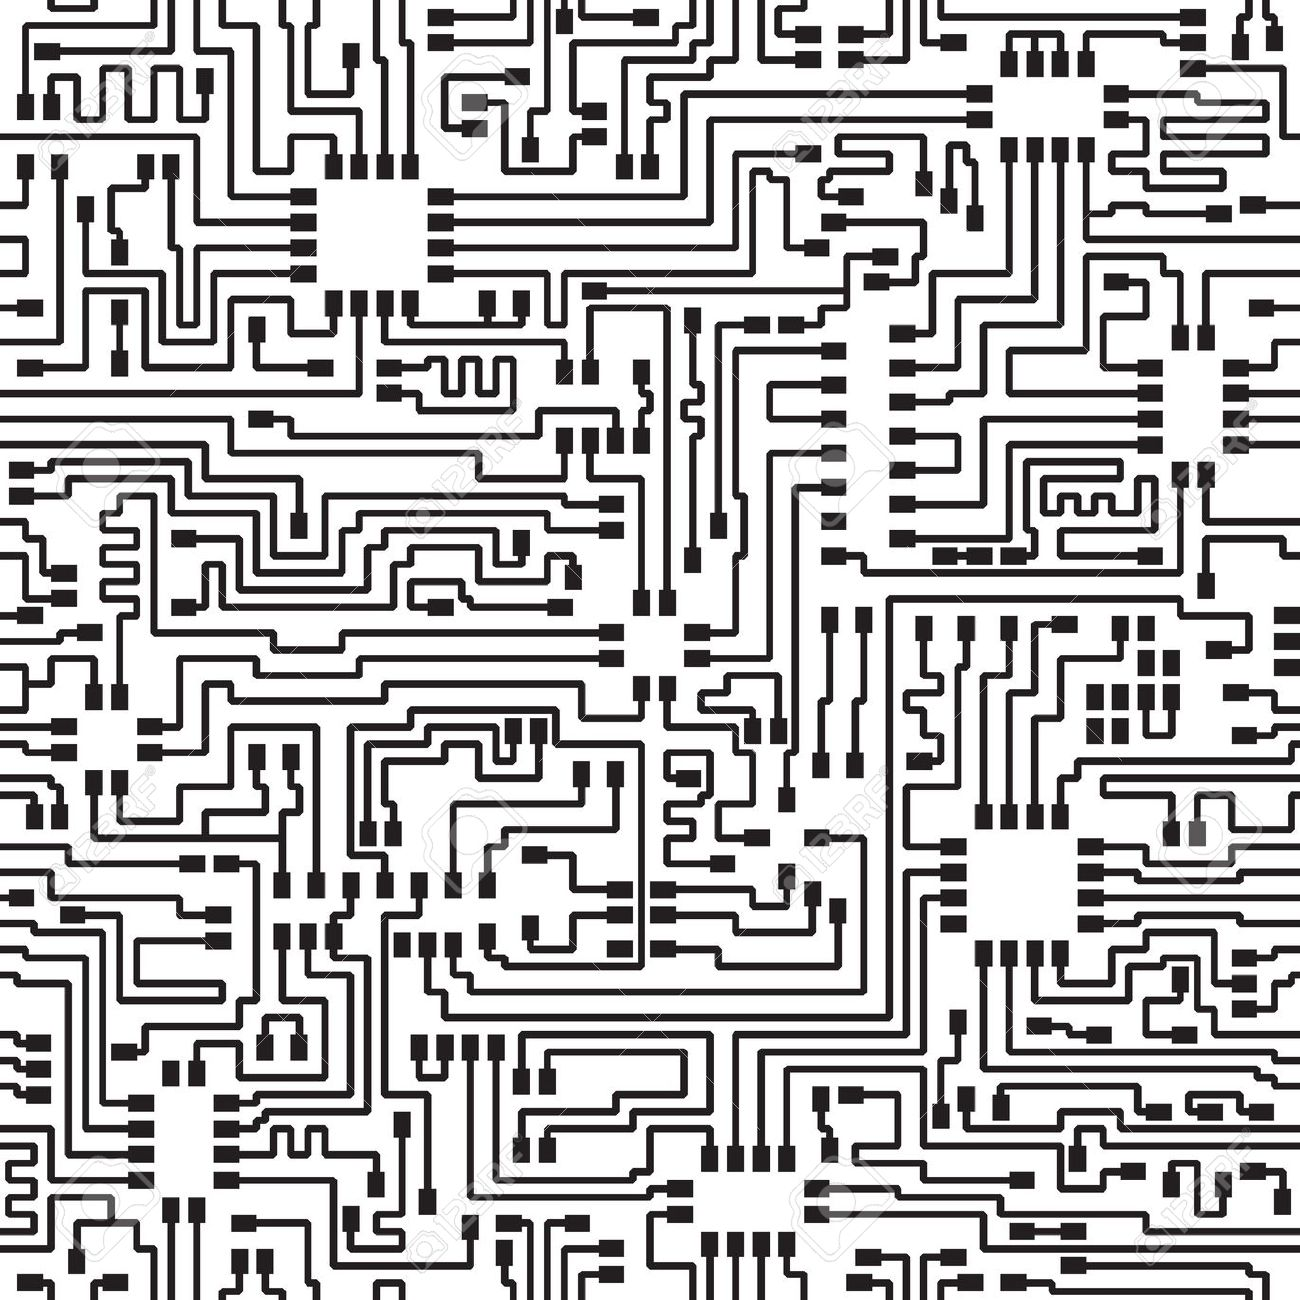 Computer Chip Drawing At Free For Personal Use Electronic Integrated Circuit As An Abstract Background Pattern 1300x1300 Seamless Hi Tech Monochrome